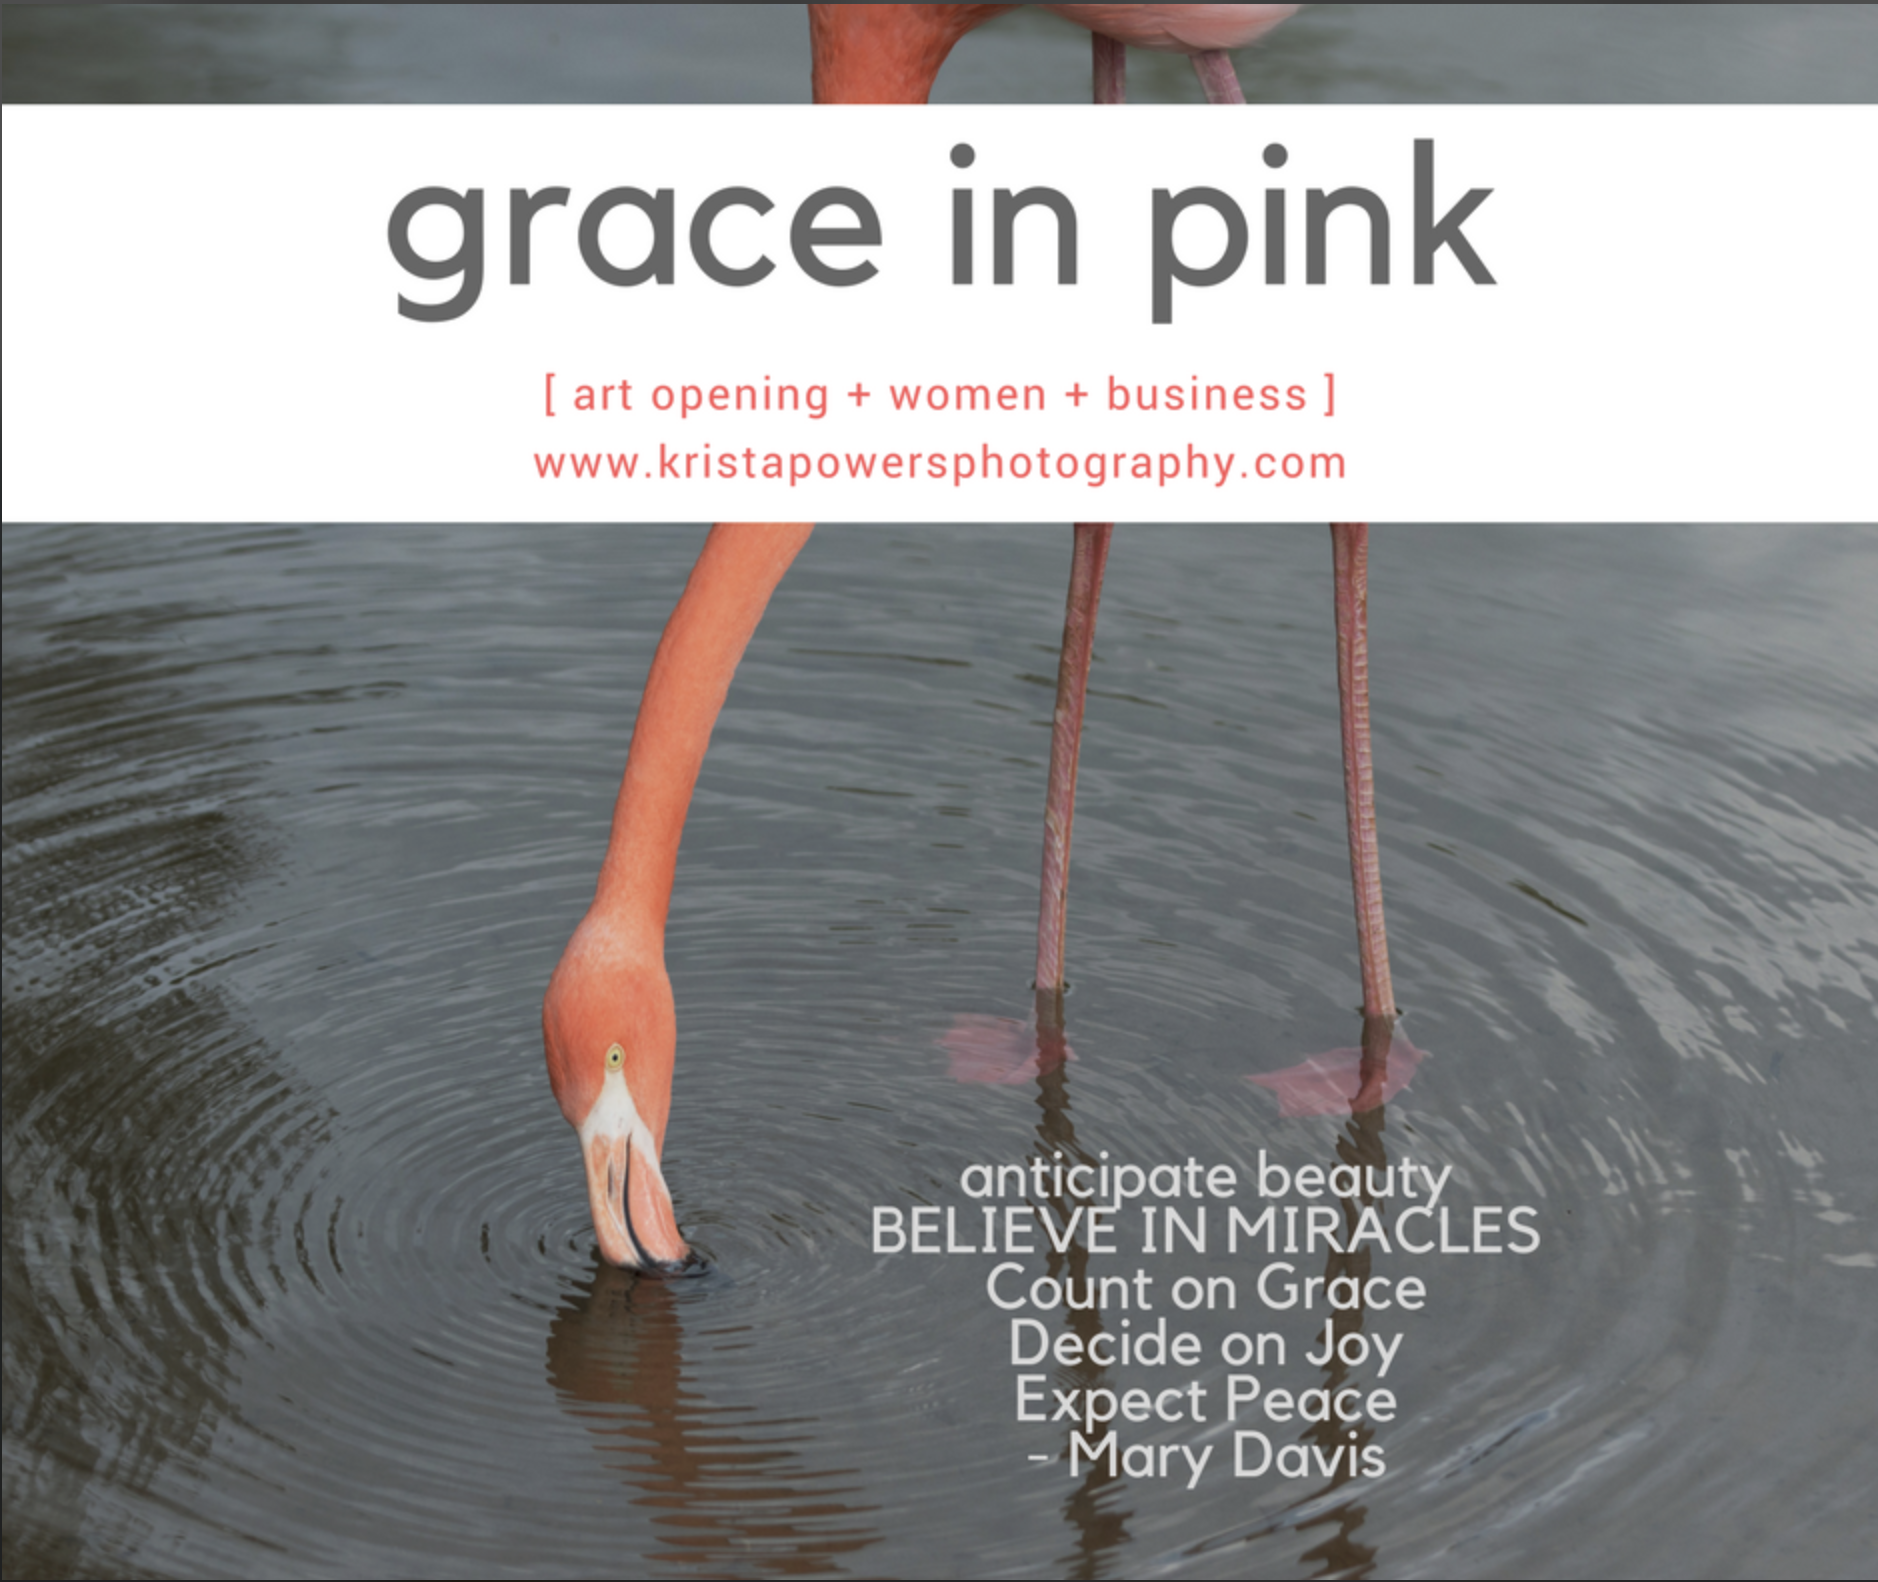 Grace in Pink Exhibit/Event